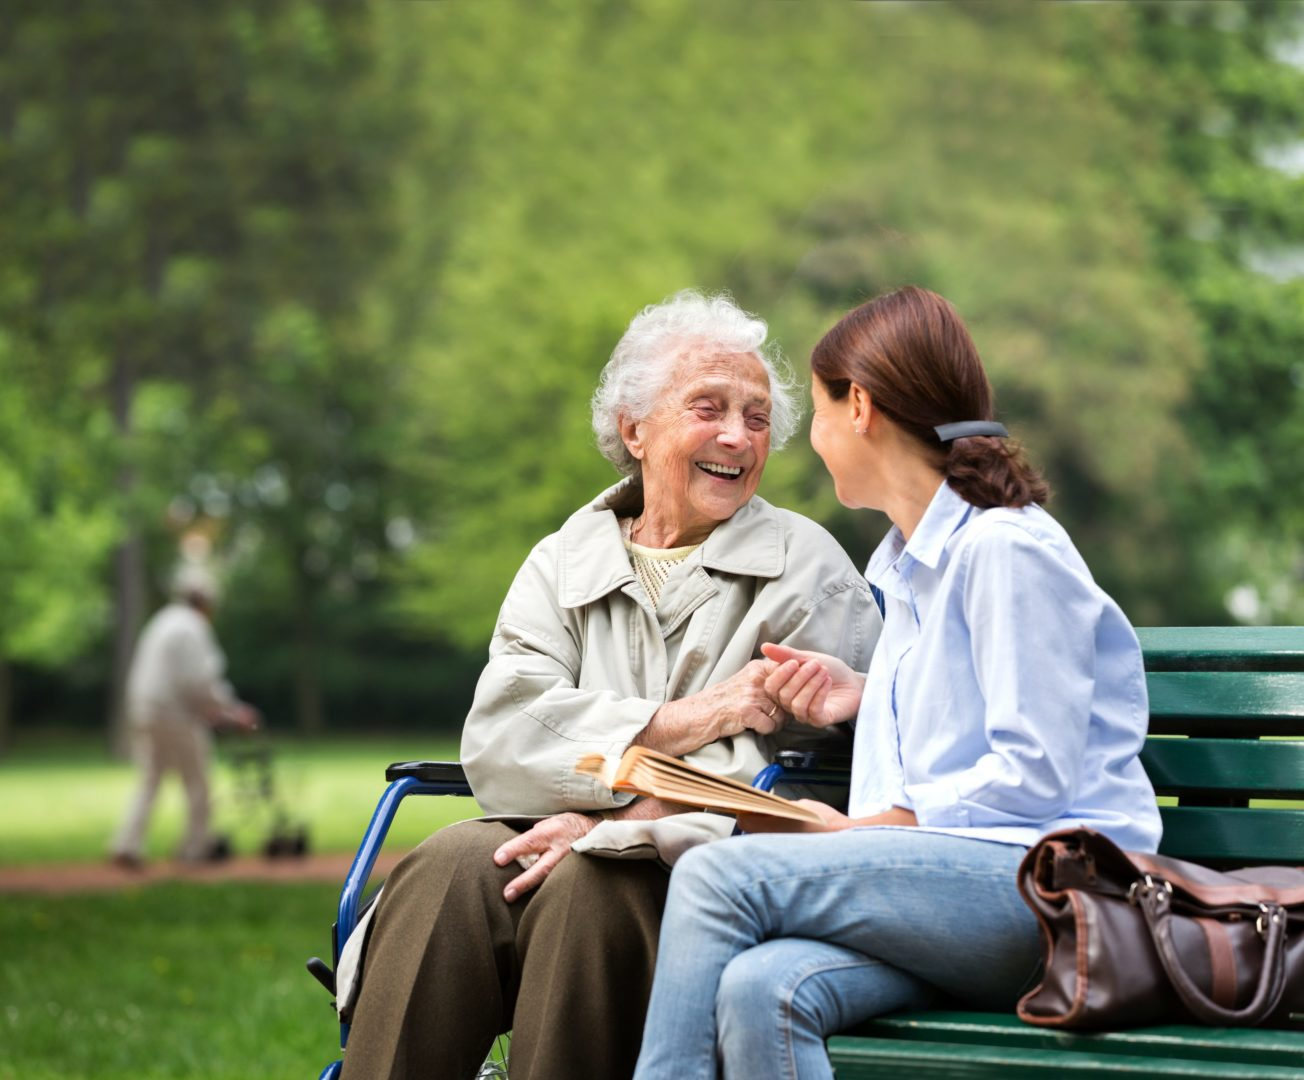 A photo of two people sitting on a bench.